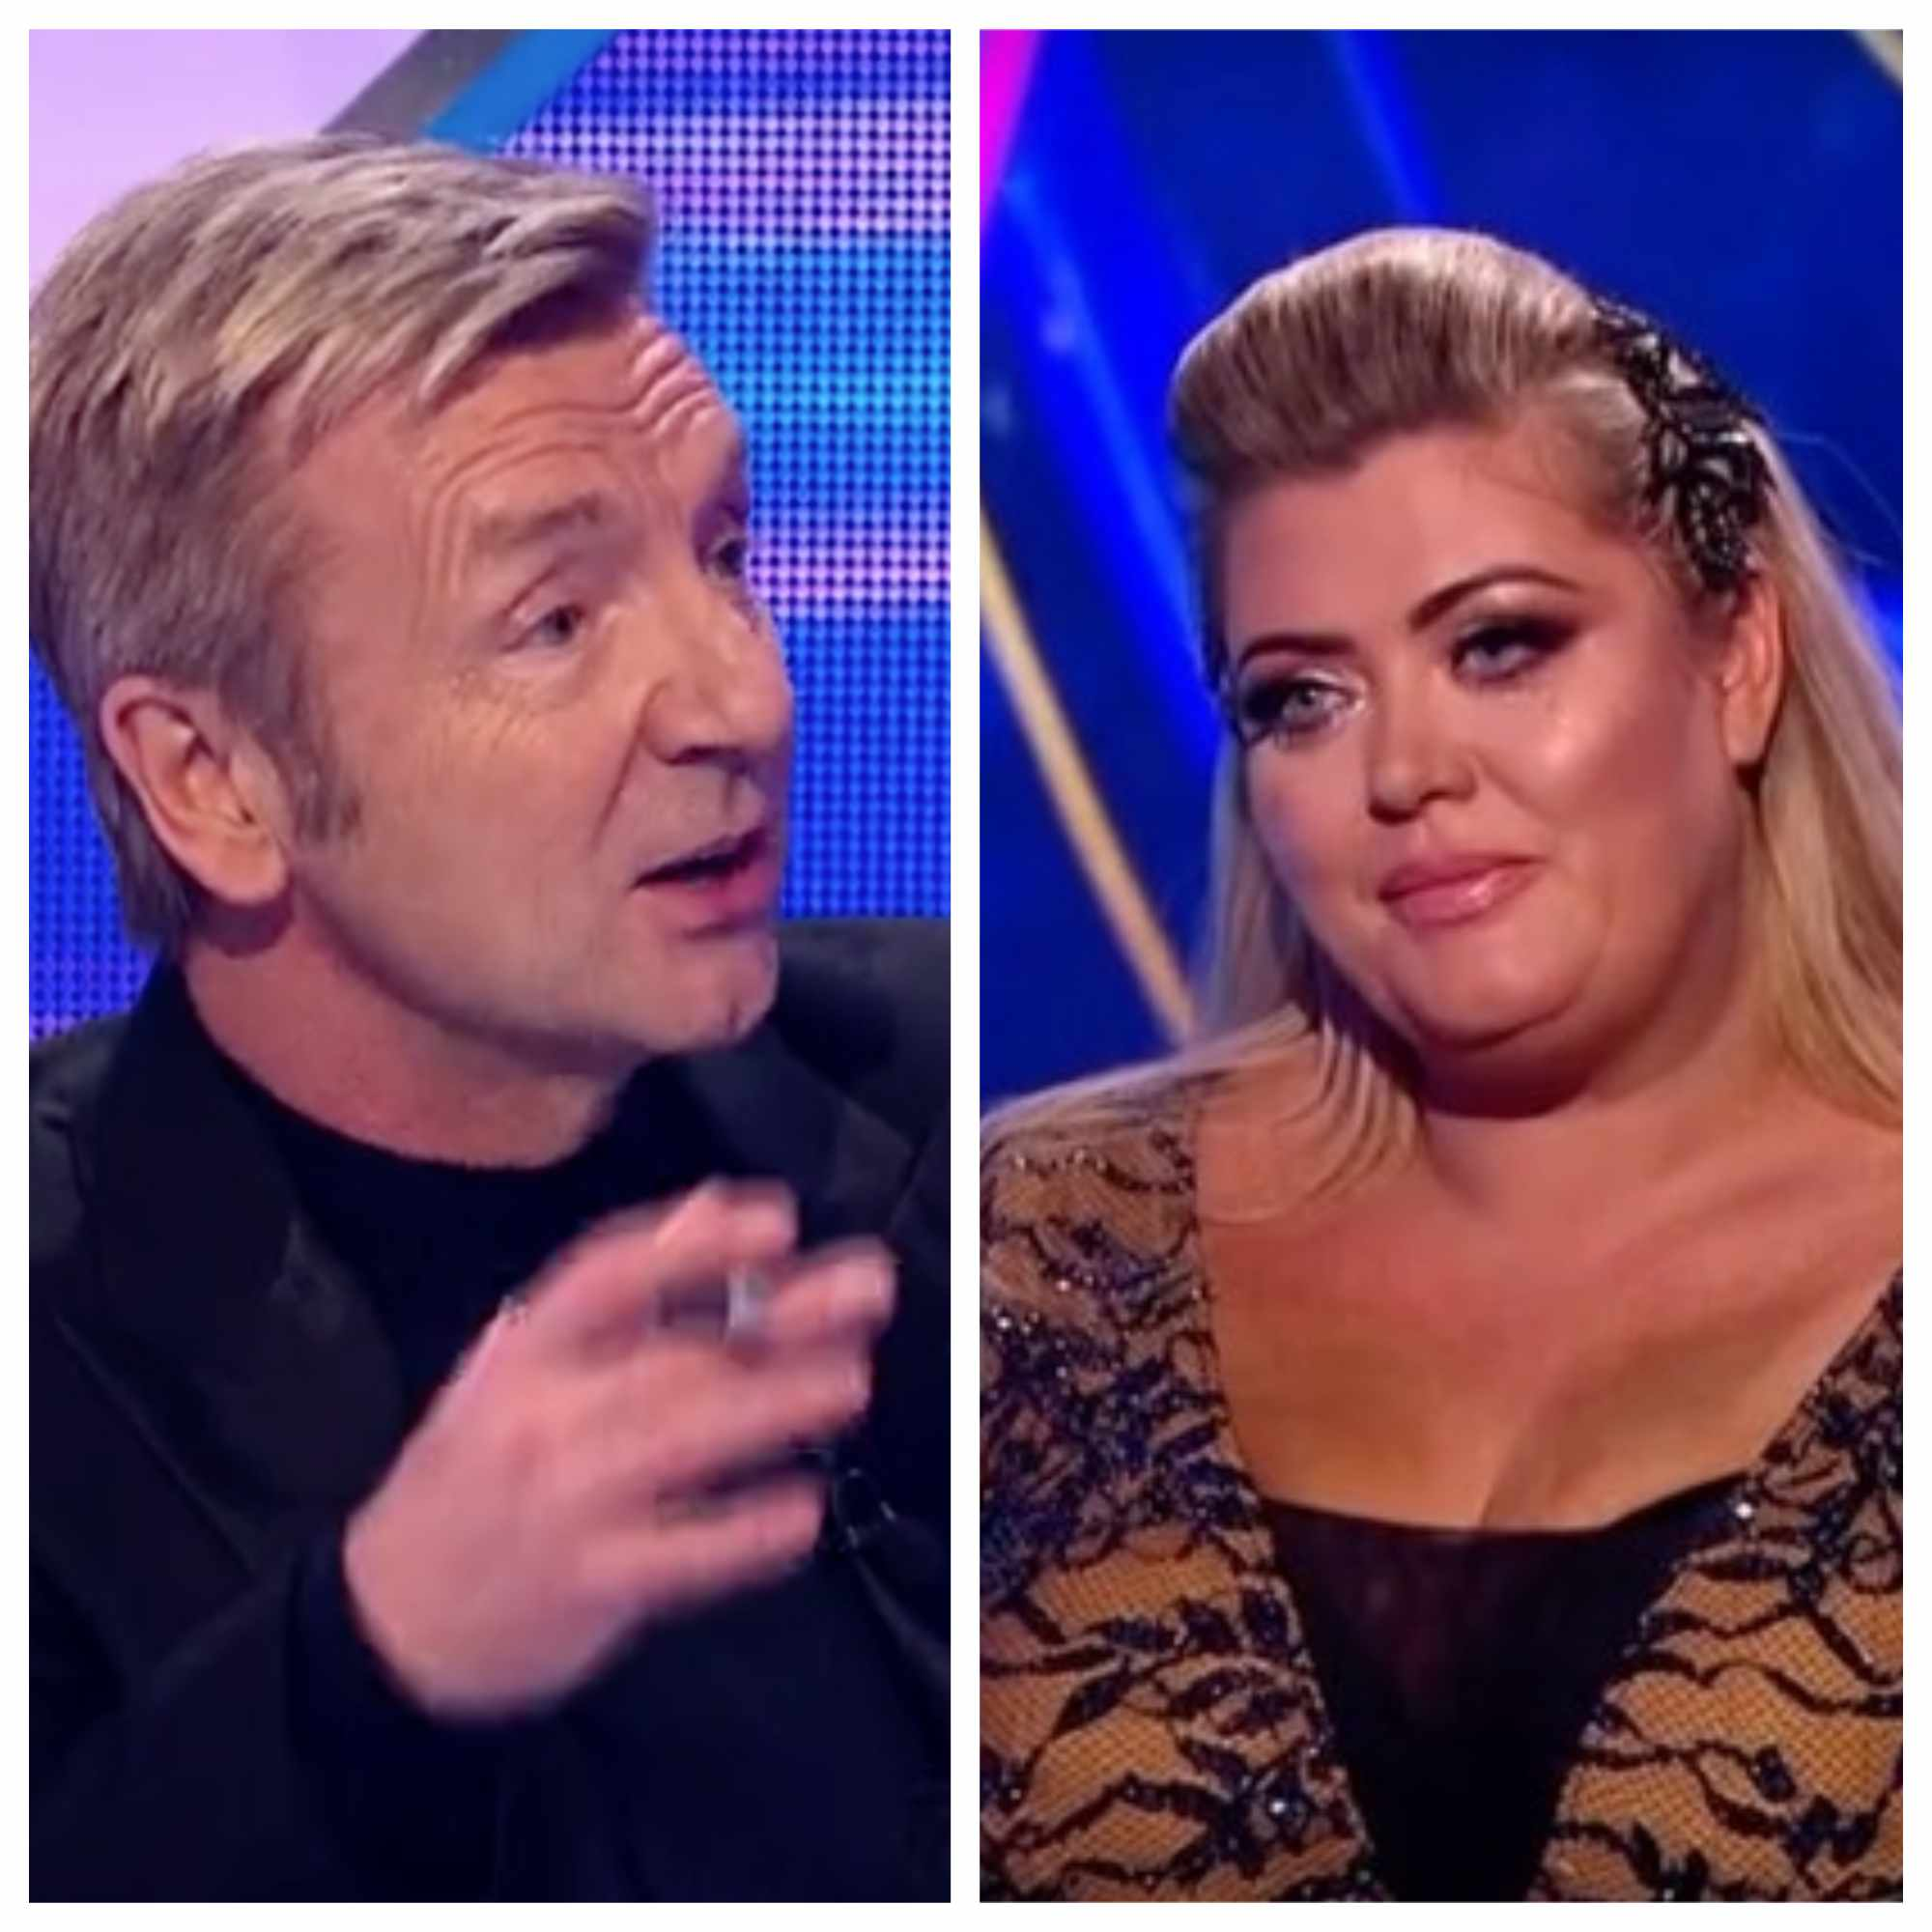 Dancing on Ice, Christopher and Gemma (ITV, screenshots)